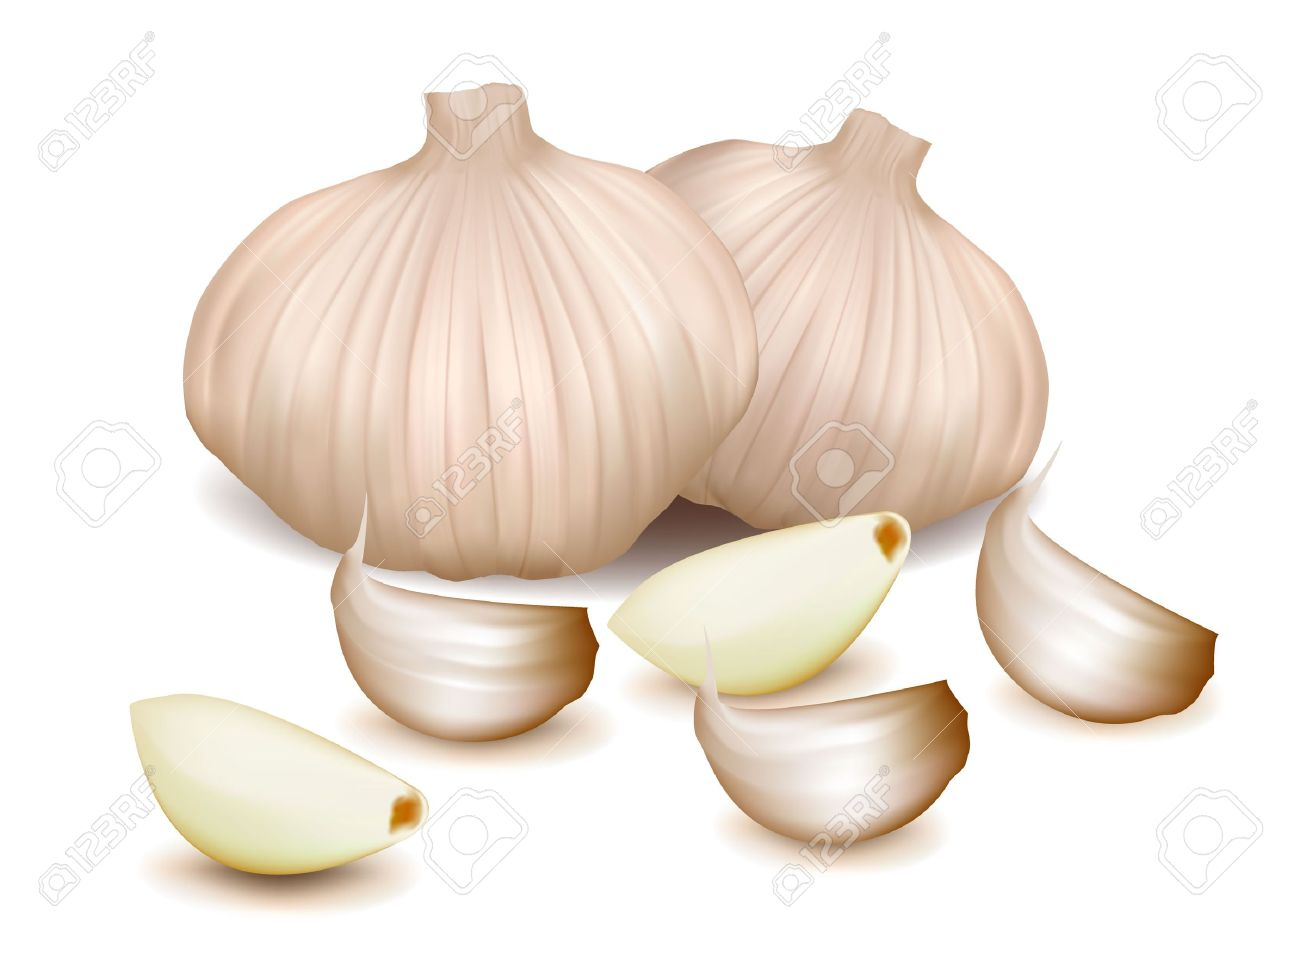 Station . Garlic clipart